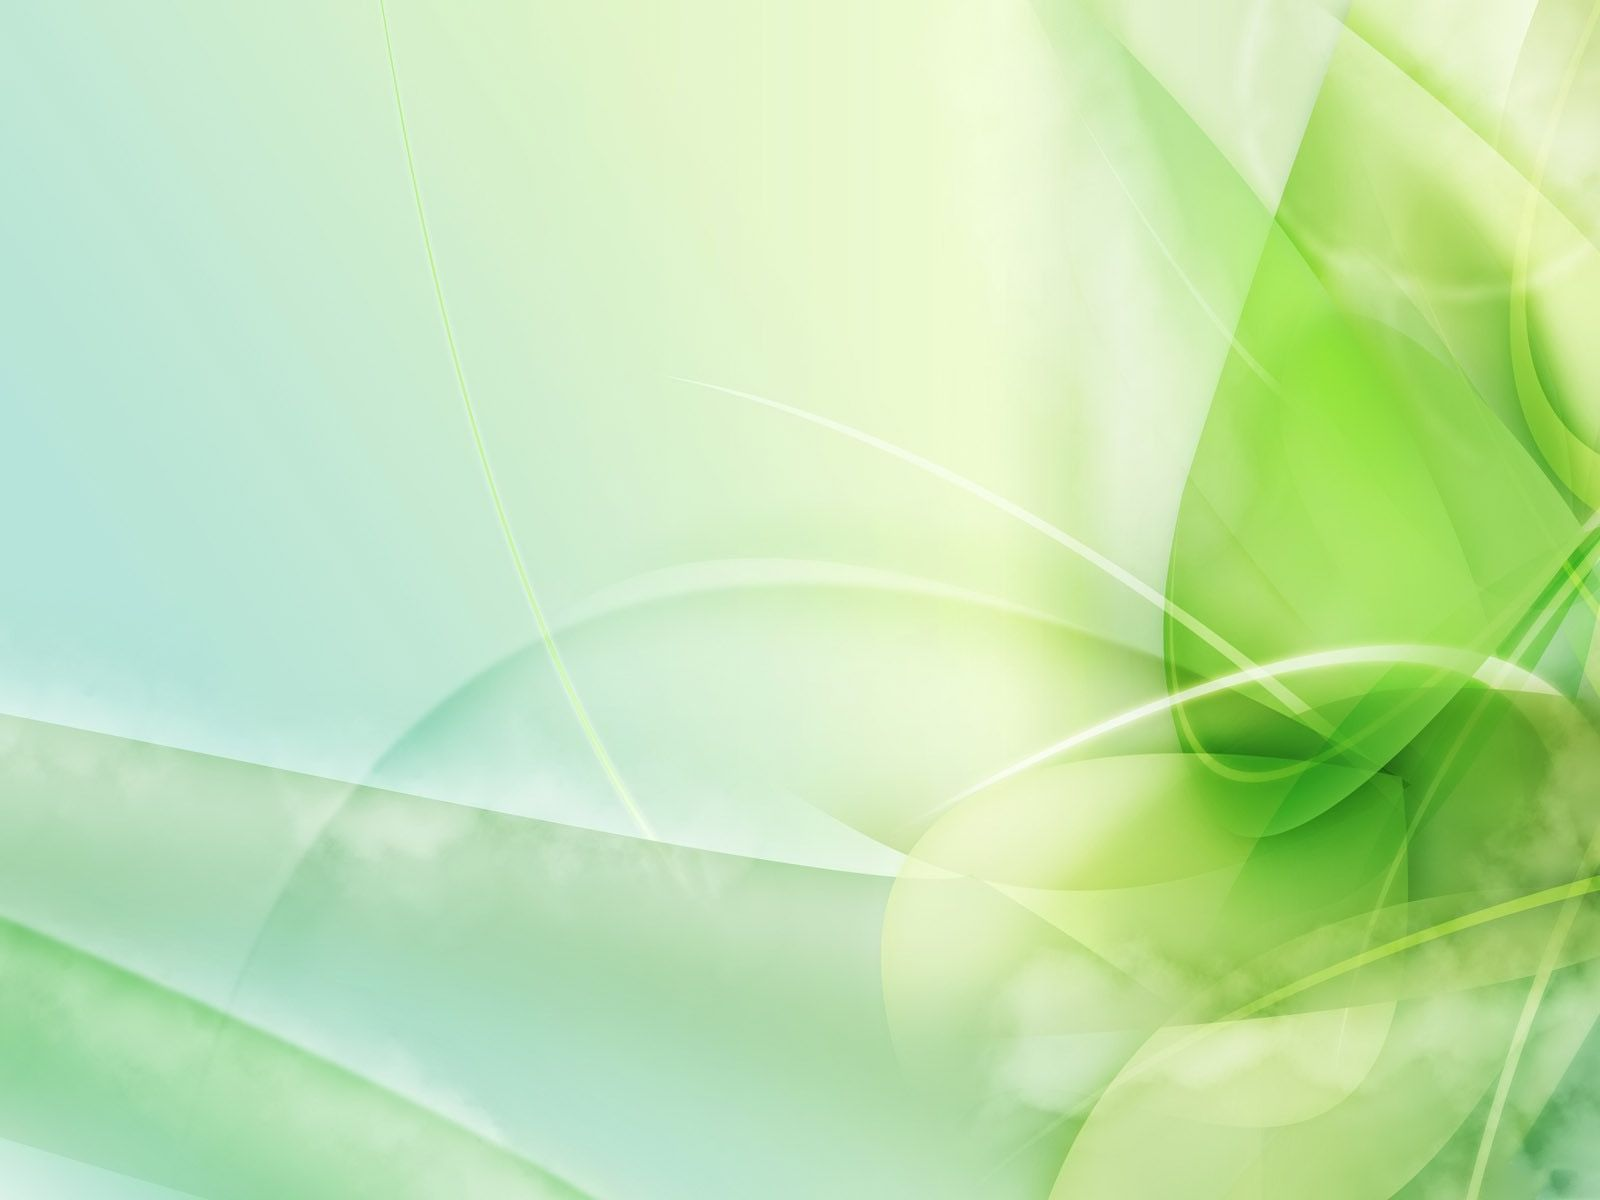 Hd wallpaper green - Blurred Green Leaves Hd Desktop Wallpaper High Definition